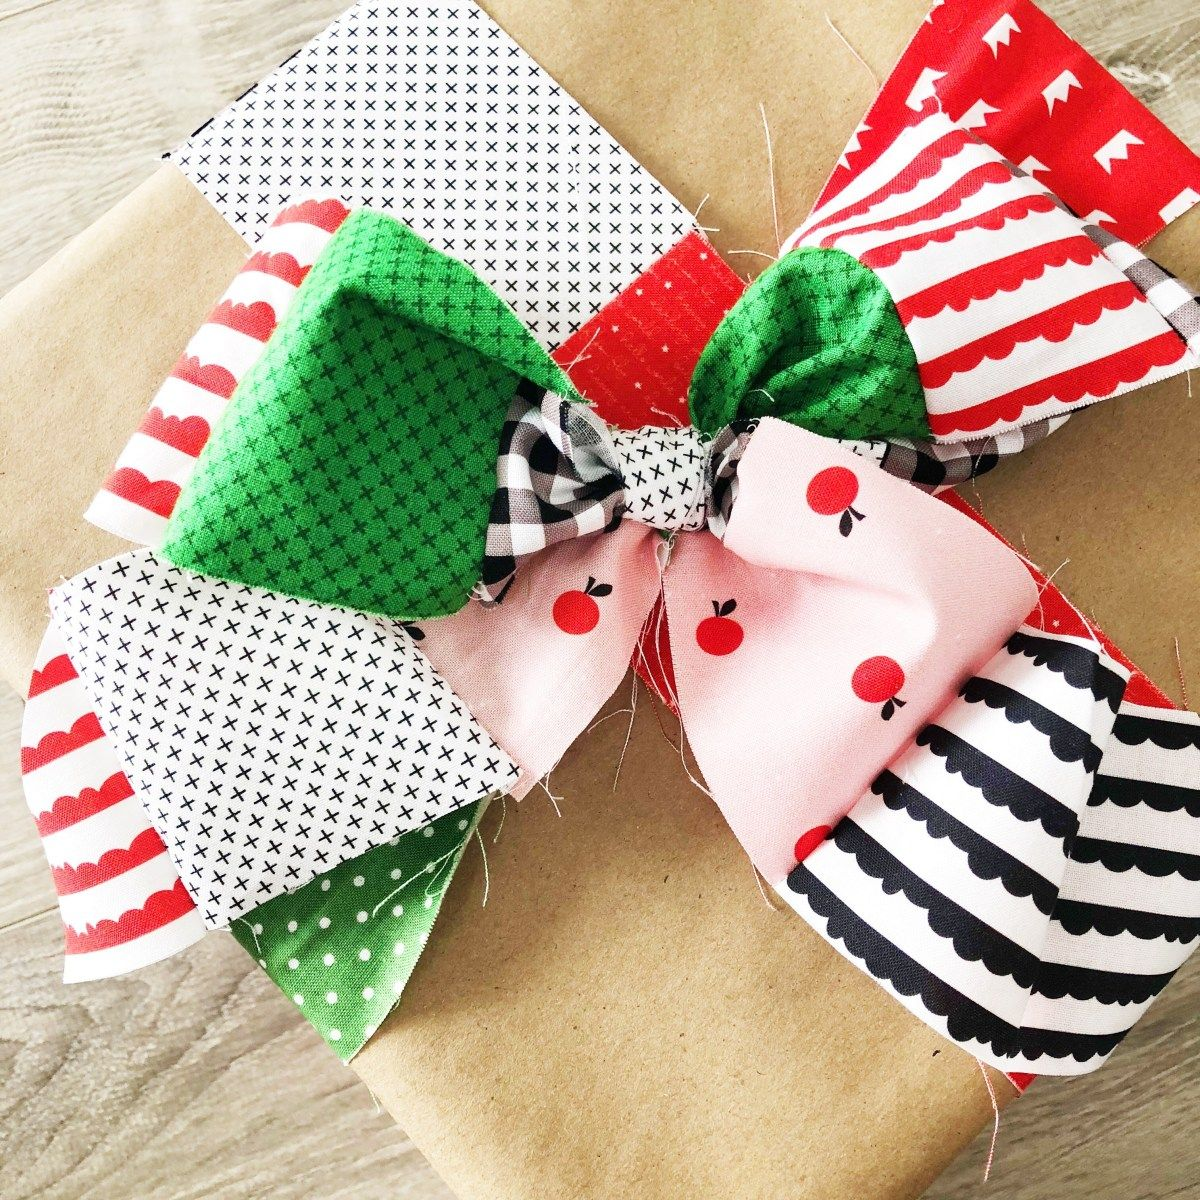 Christmas in july 2019 week 1 using fabric scraps to